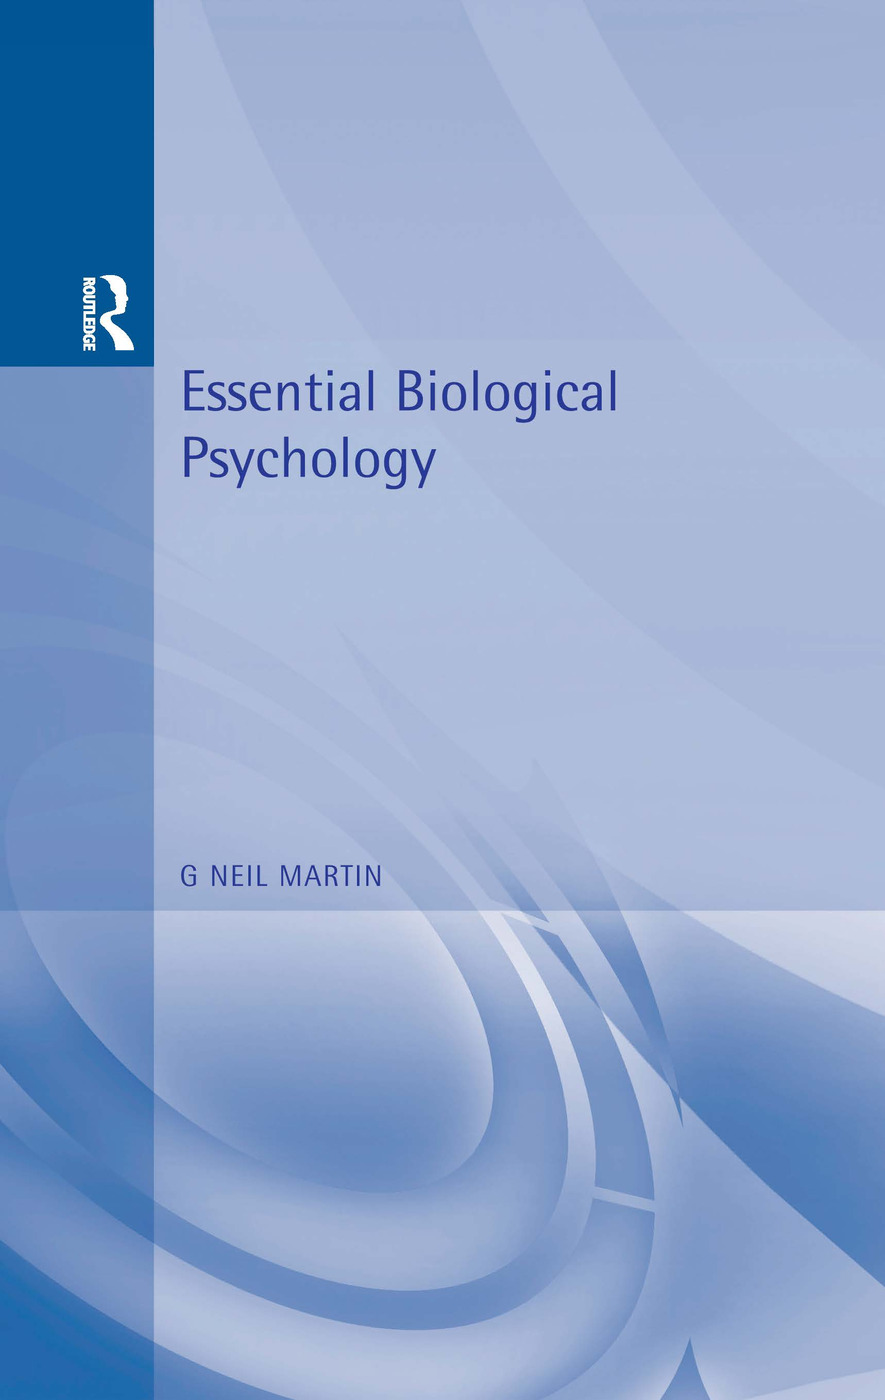 Essential Biological Psychology book cover